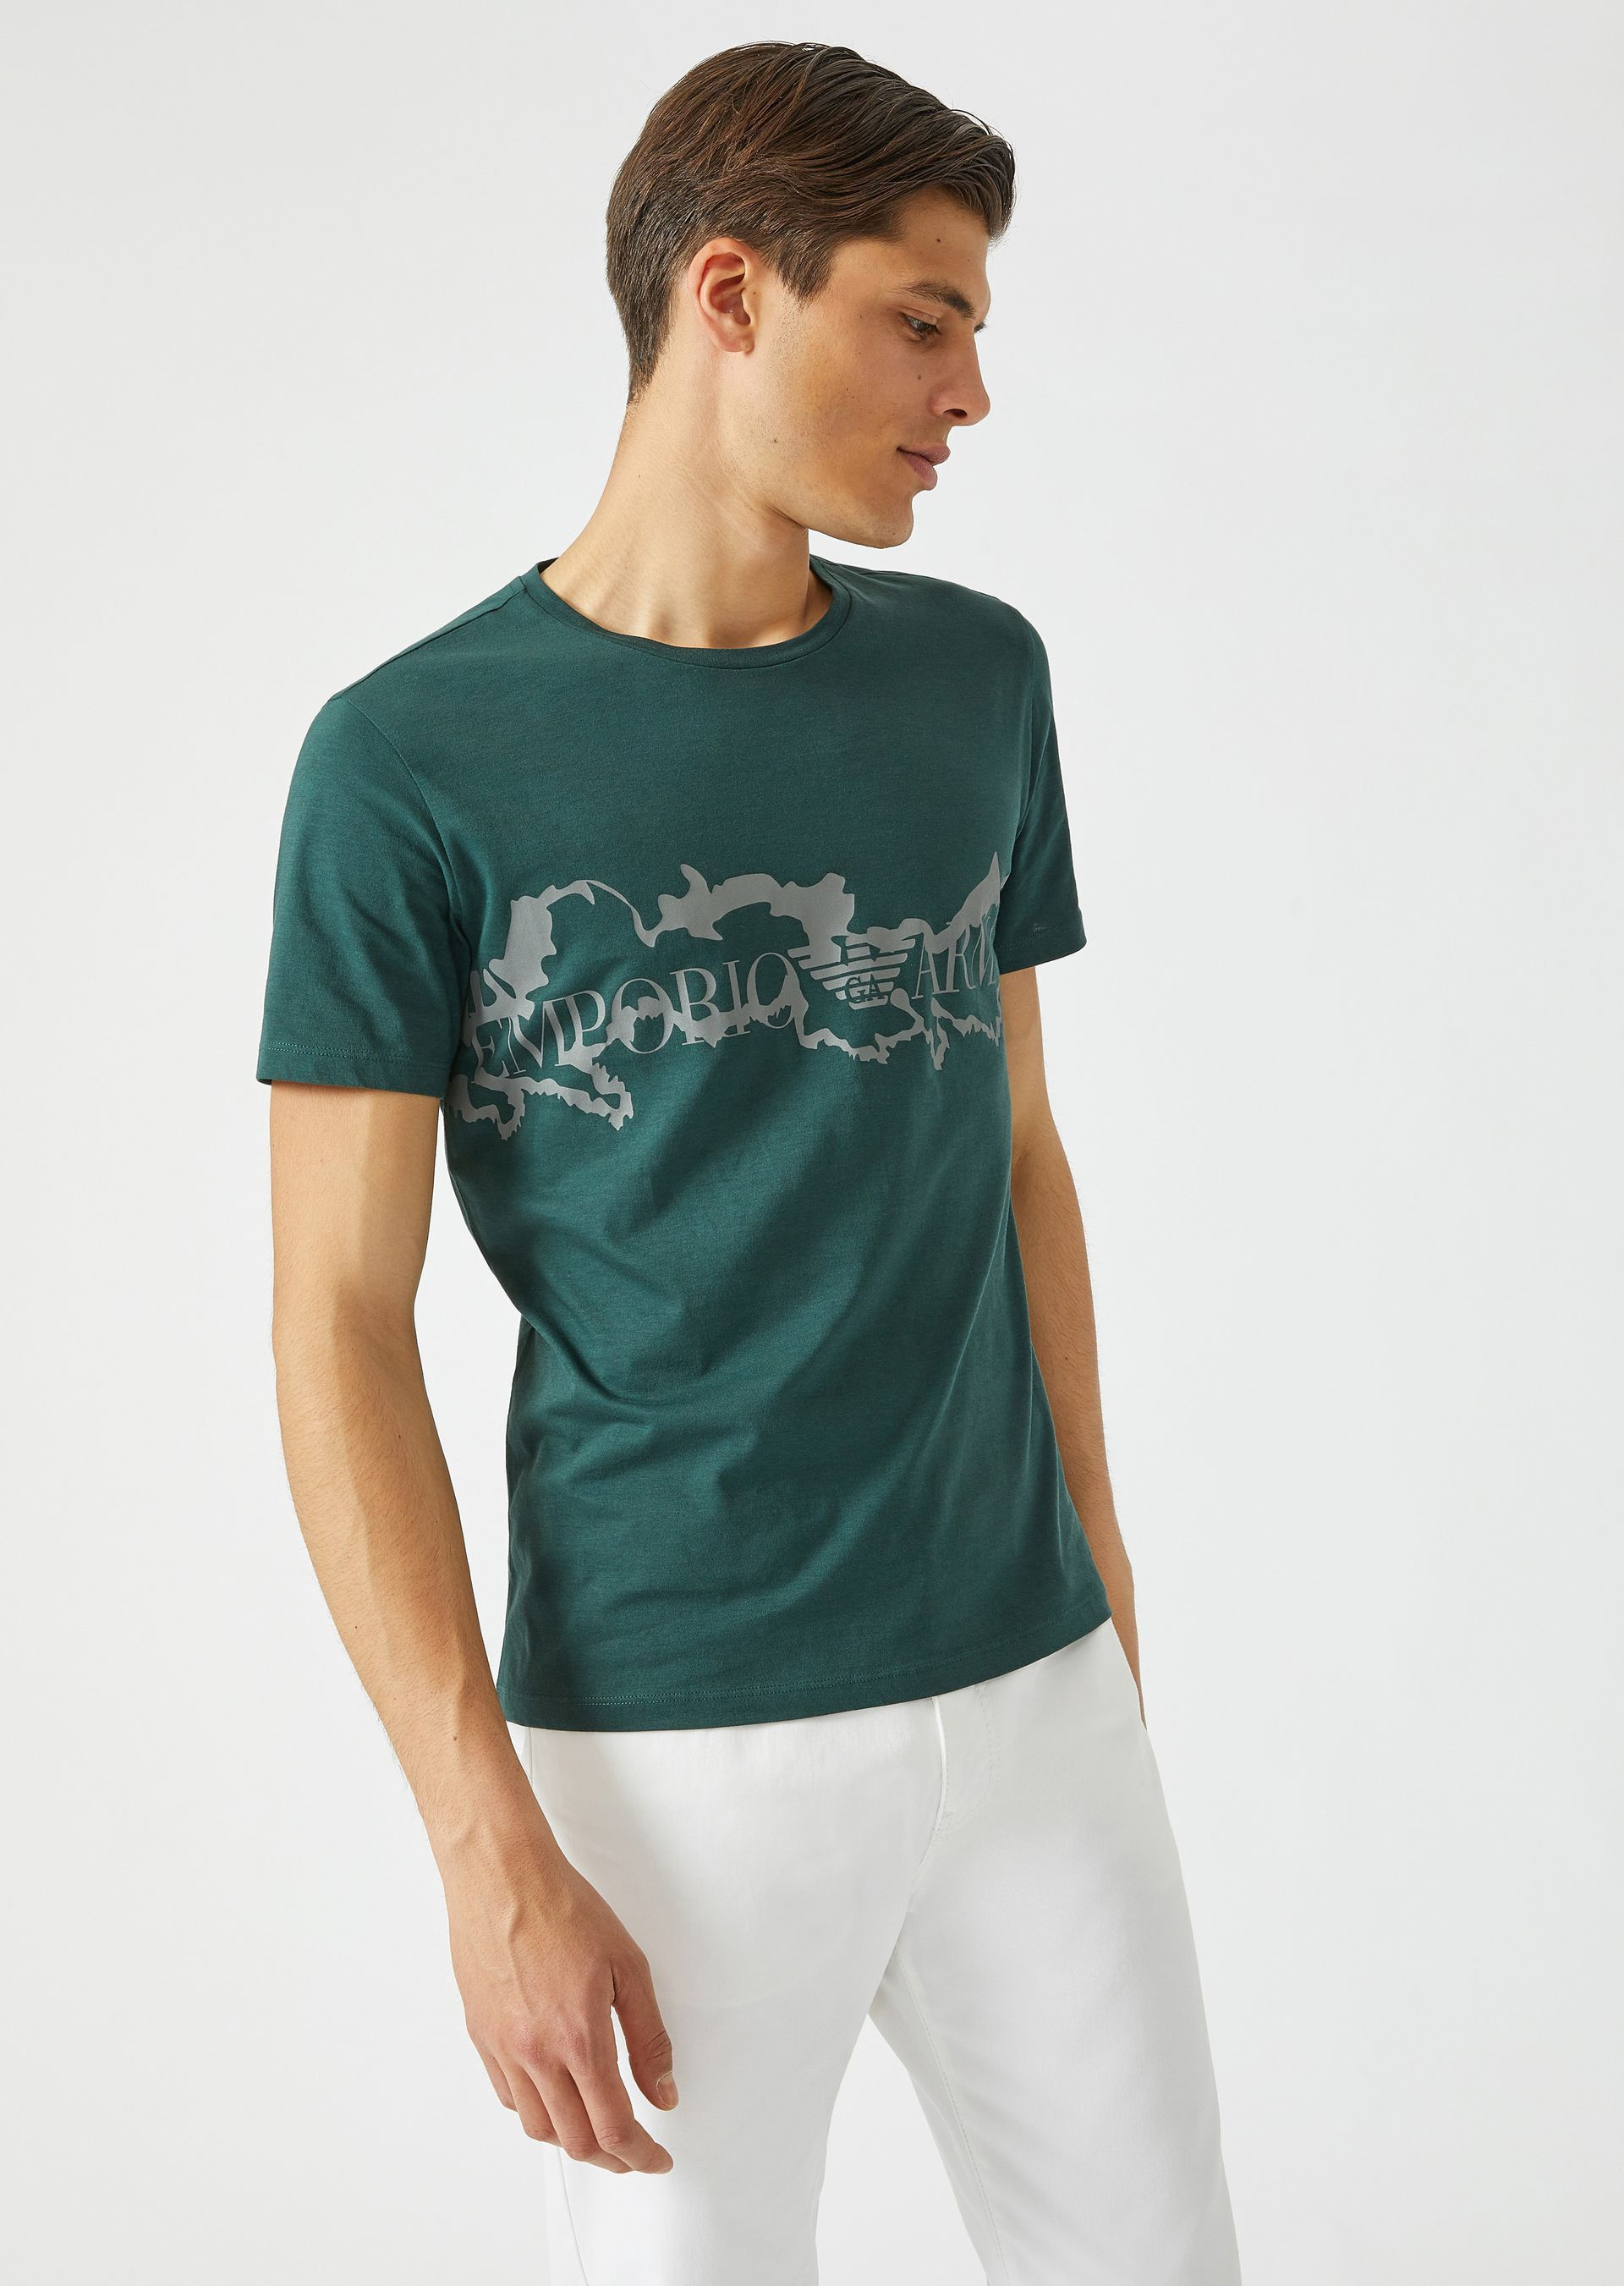 c0d314db Emporio Armani T-Shirt In Lightweight Cotton Jersey With Contrasting Logo  Print - Forest Green Xxl